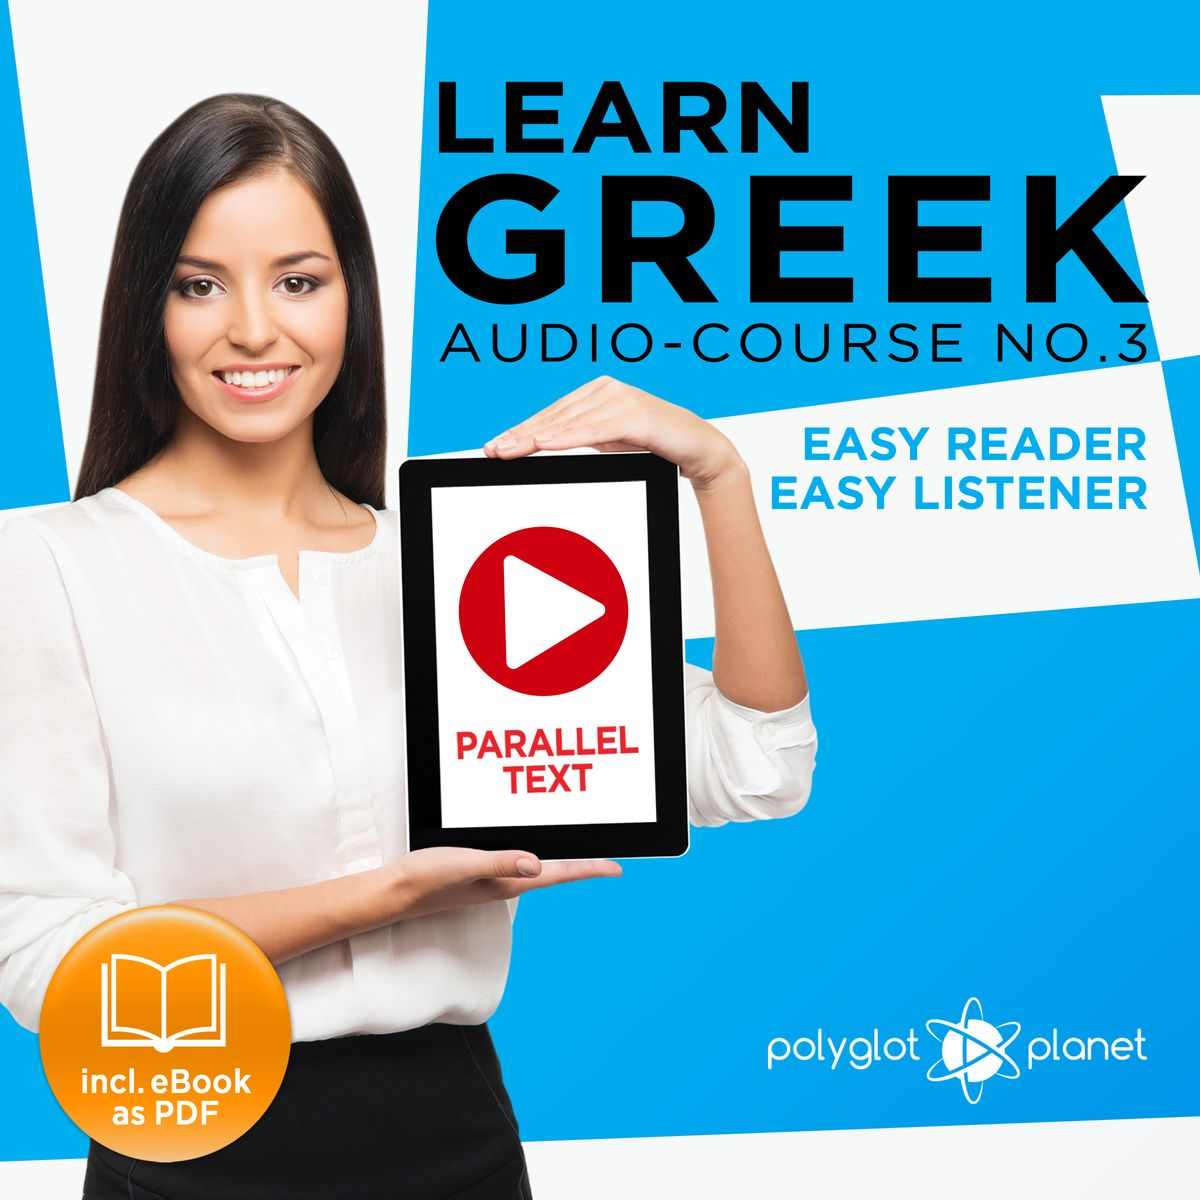 Learn Greek - Easy Reader - Easy Listener - Parallel Text - Learn Greek Audio Course No. 3 - The Greek Easy Reader - Easy Audio Learning Course - Audiobook